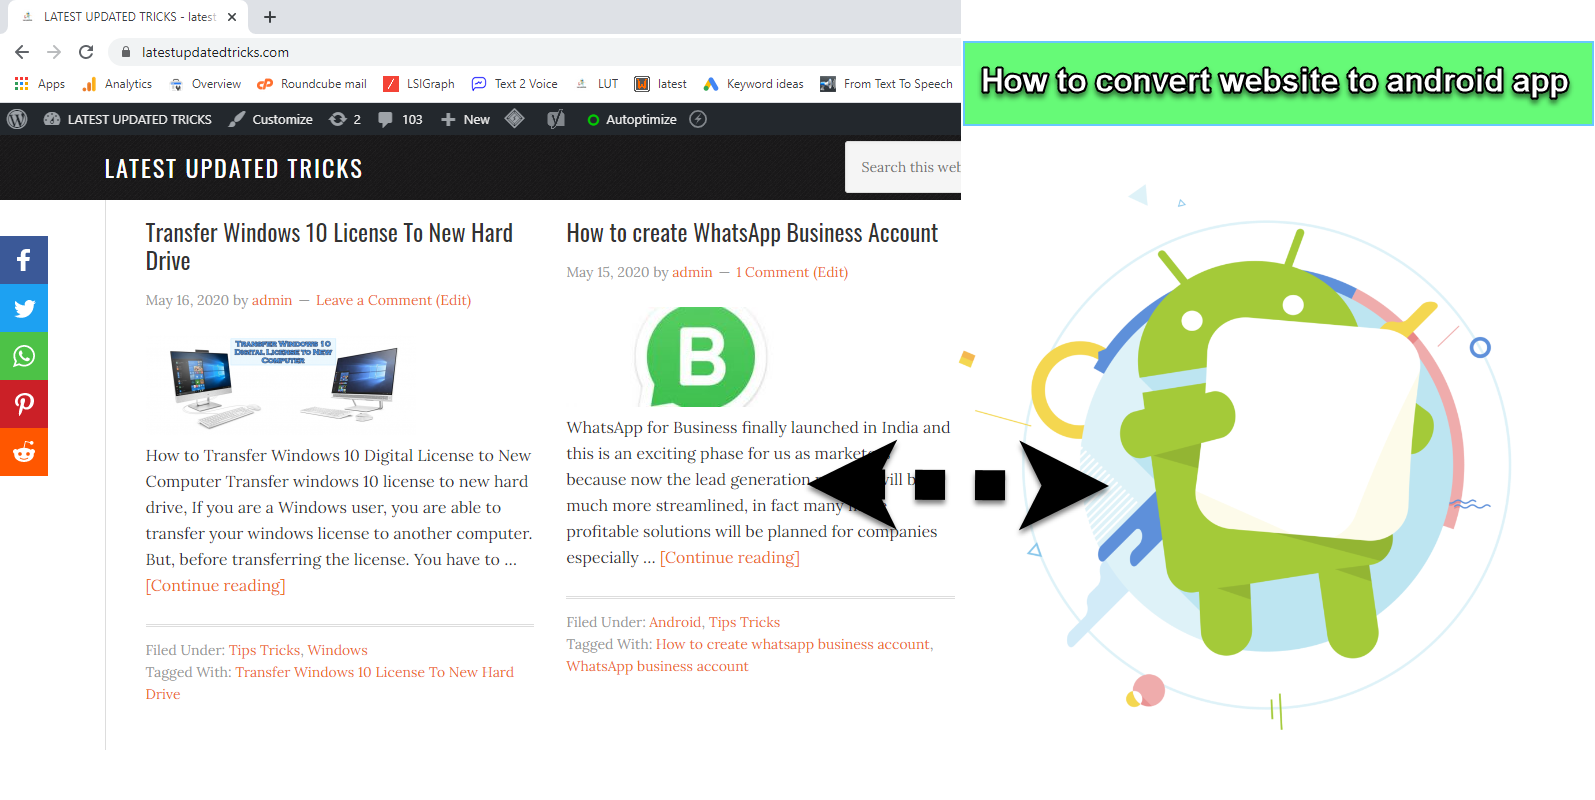 How to convert website to android app